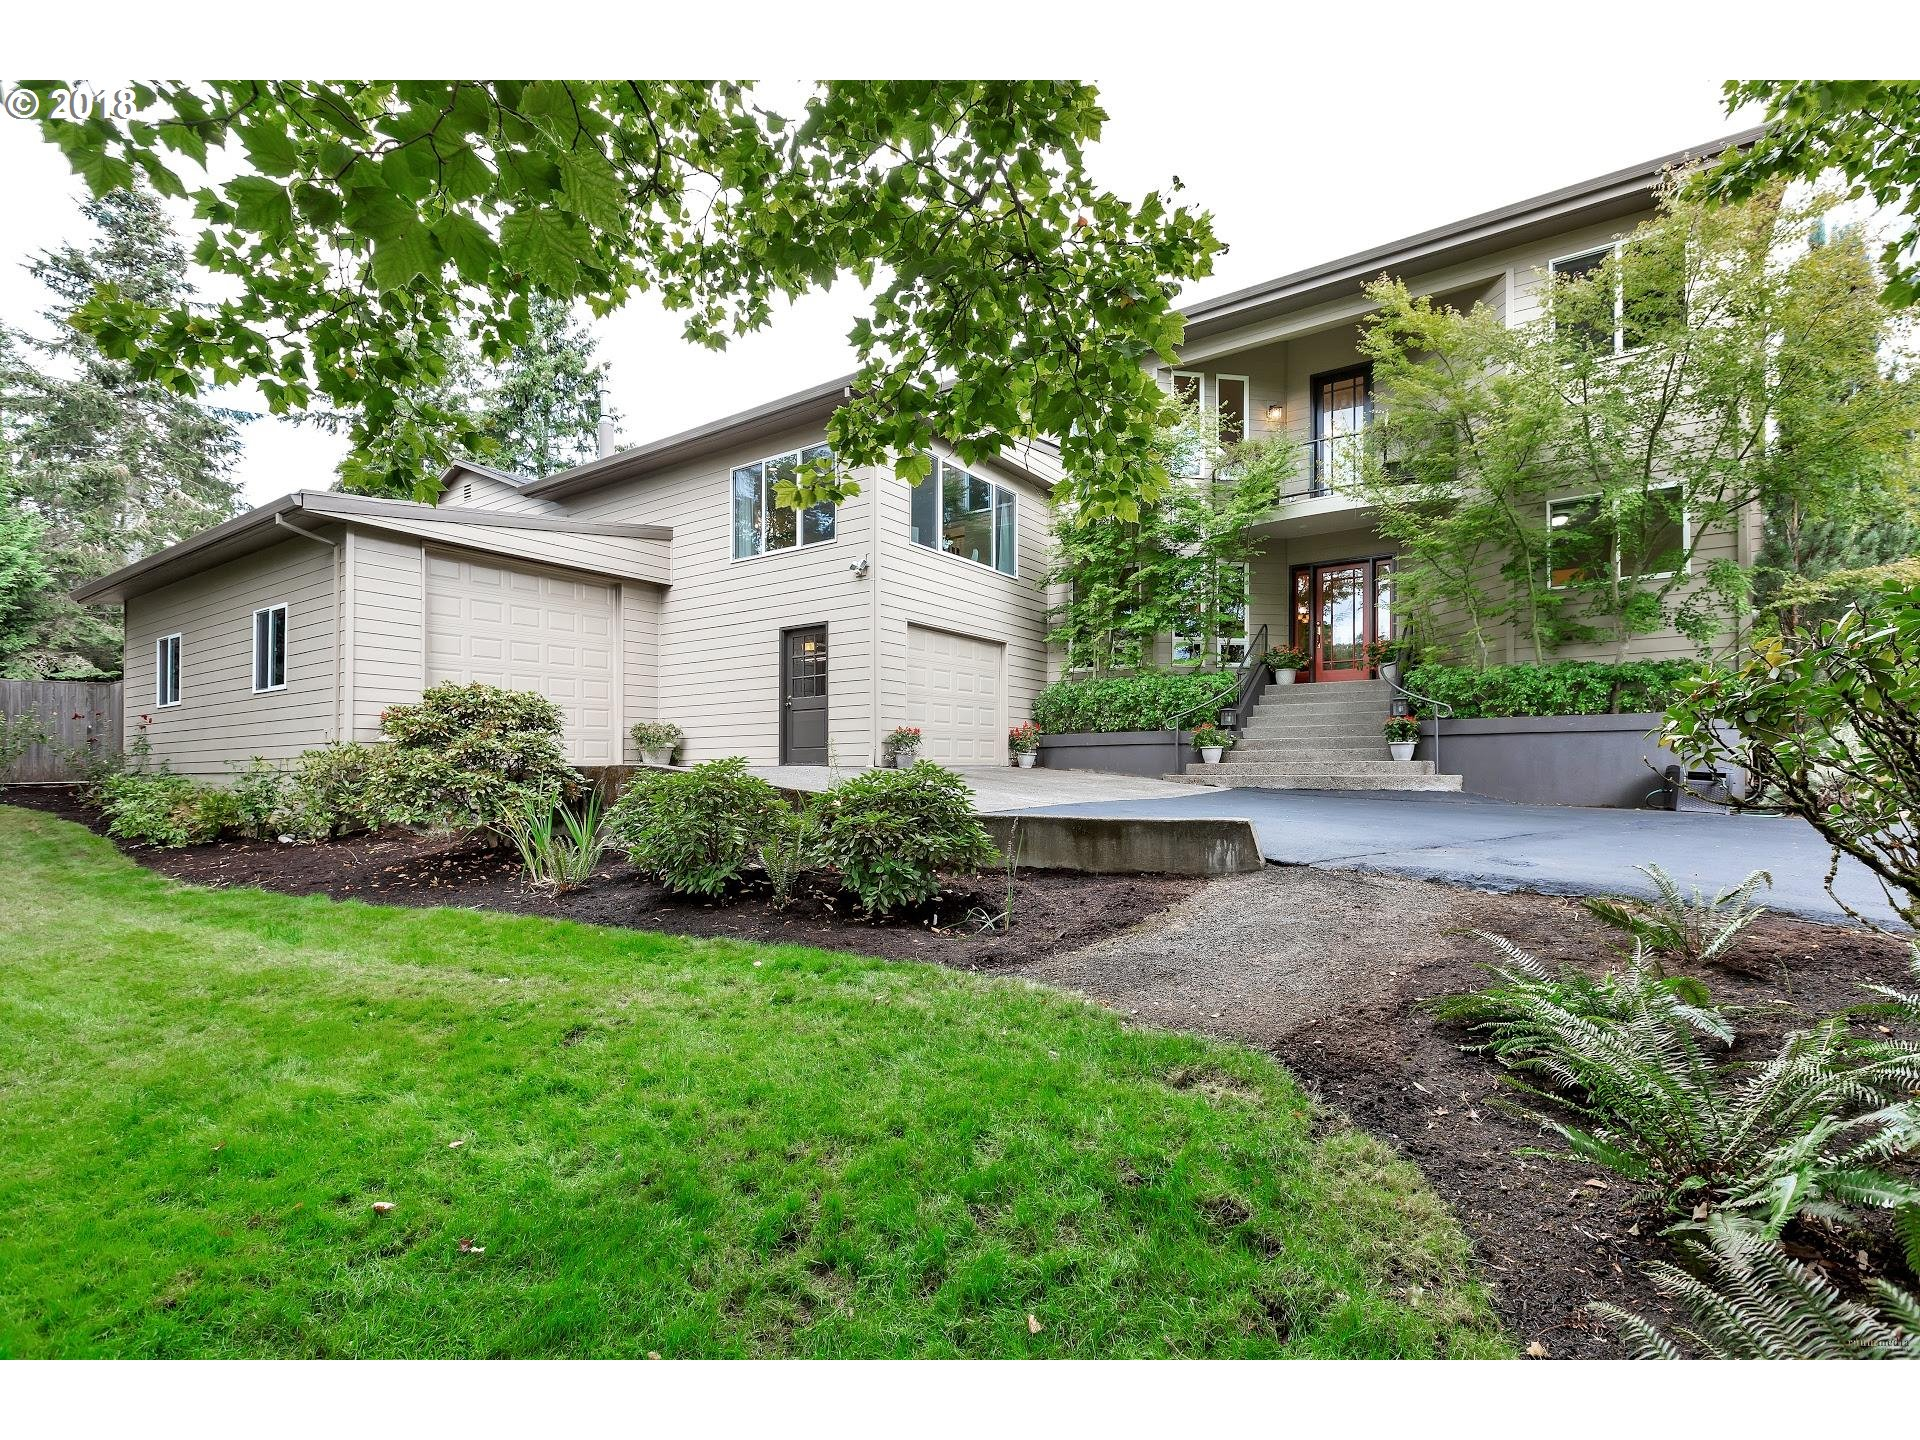 Extensively remodeled in 2000, this custom Ironwood home sits on .42ac w/lush gardens,level lawn, hottub, sportcourt & new deck. Interior flows w/new hardwood floors thru-out the entry, dining, living & light filled kitchen. A main floor bedroom ensuite provides an array of options; oversized Master Suite (upper) w/sitting area & fireplace; two add'l bedrooms w/large WI closets & shared secret loft. Oversized garage w/RV bay & workshop.